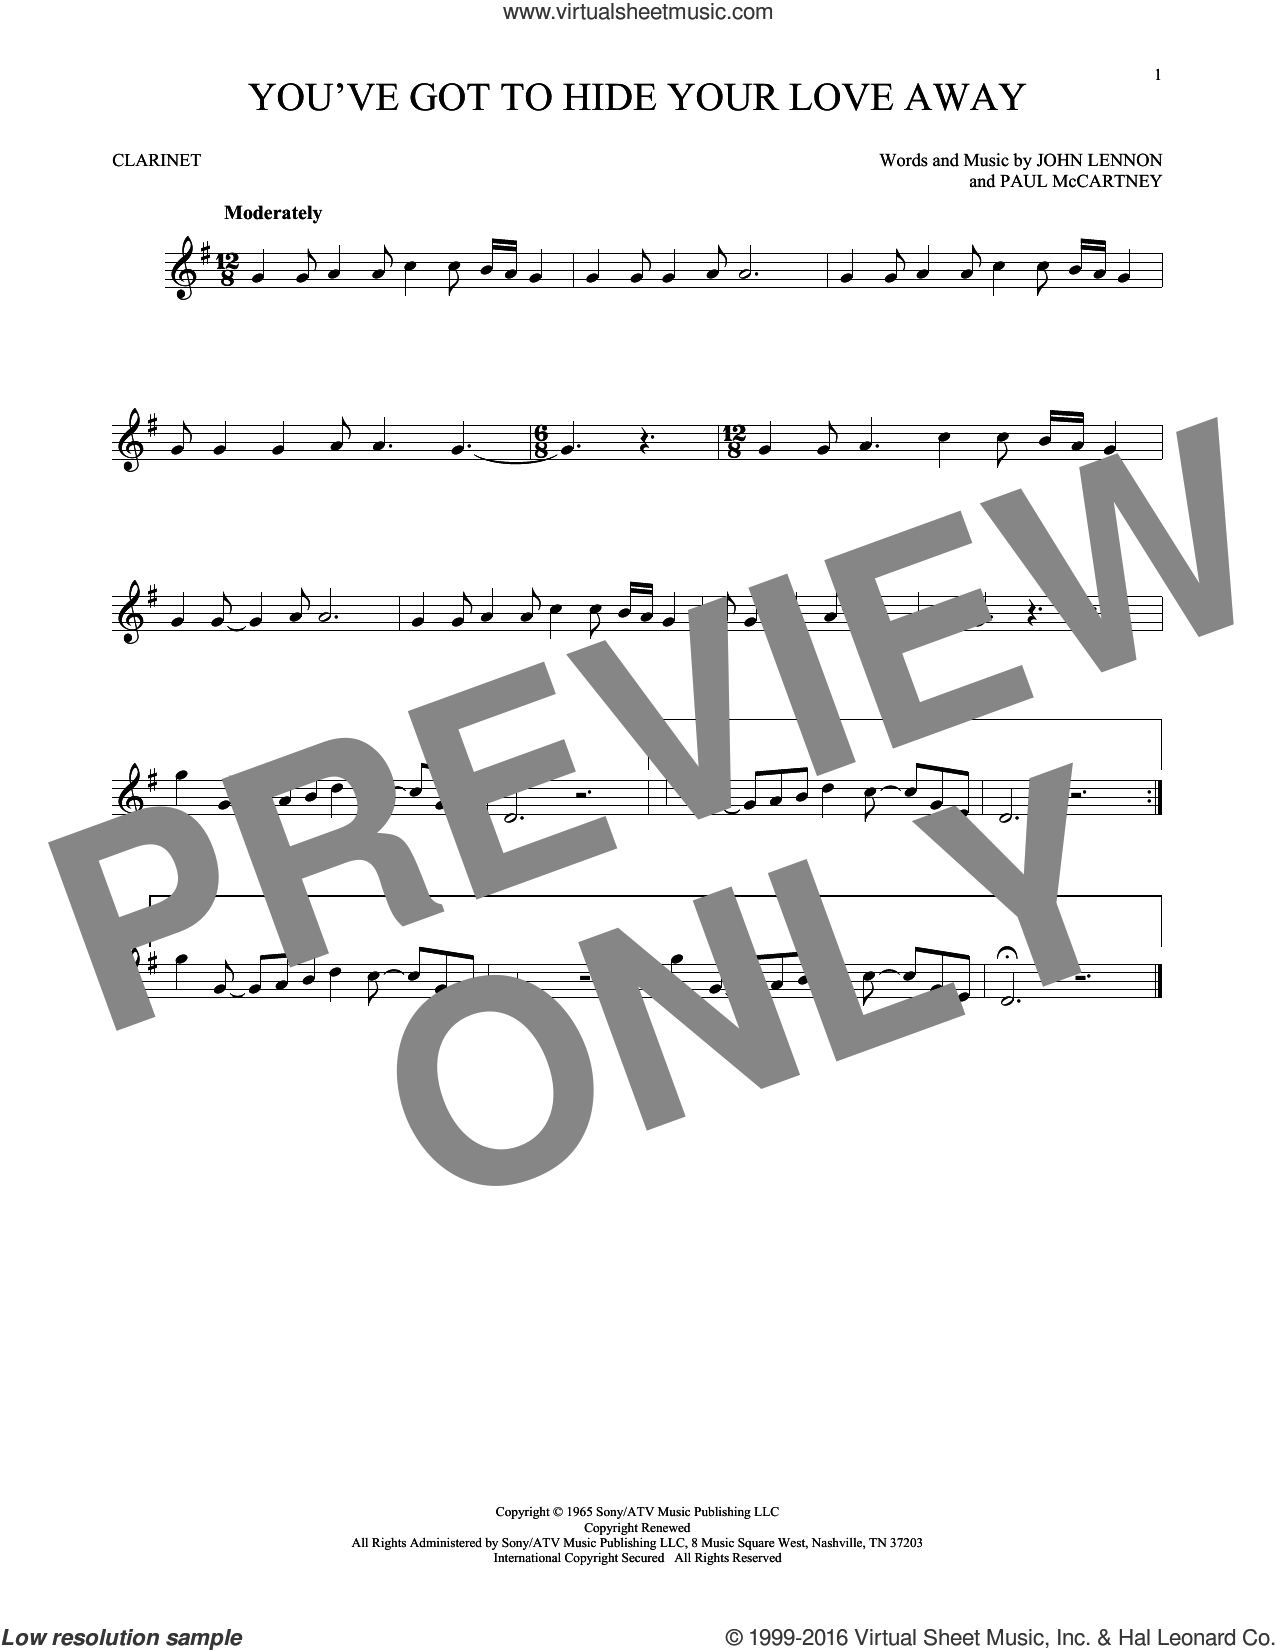 You've Got To Hide Your Love Away sheet music for clarinet solo by Paul McCartney, The Beatles and John Lennon. Score Image Preview.